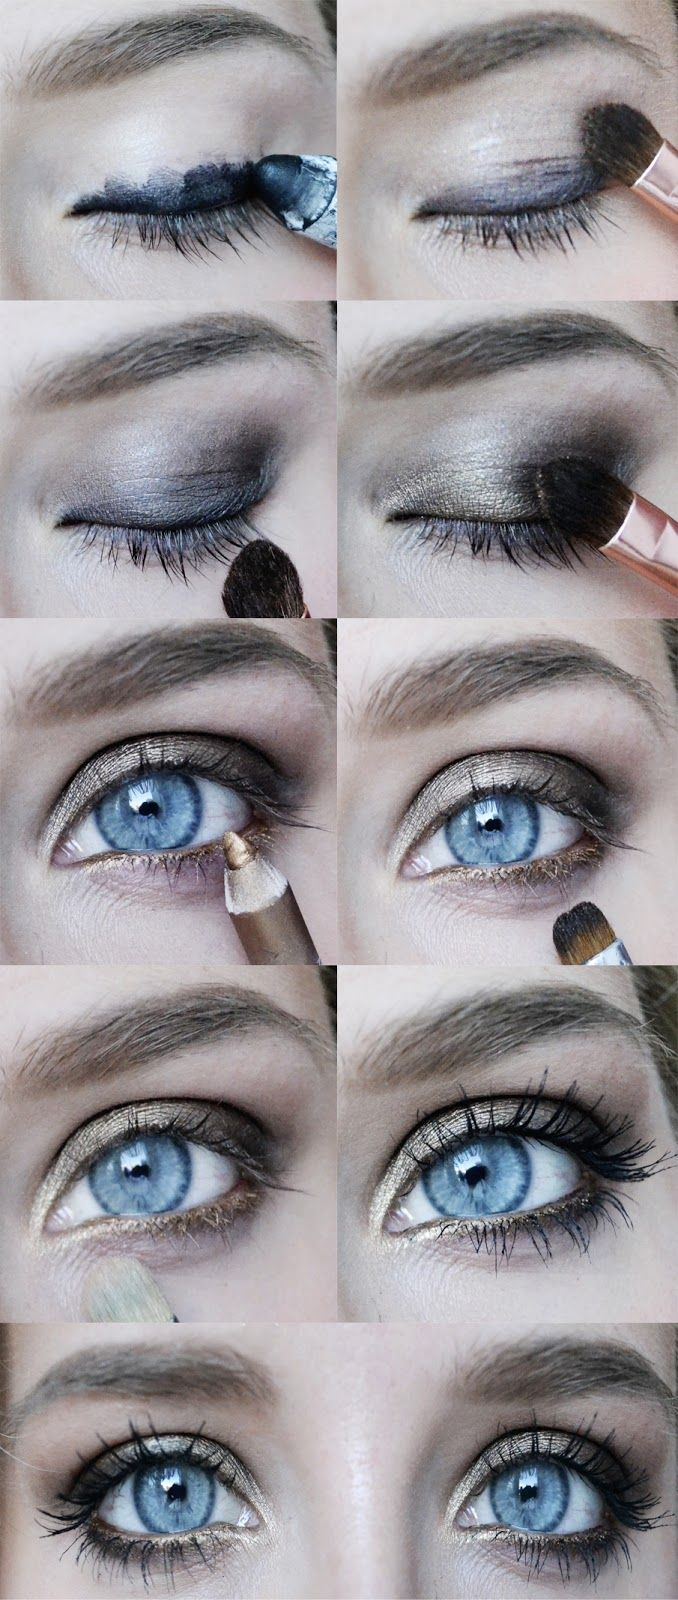 Urban Decay Naked Palette  1. Darkhorse  2. Smog  3. Half Baked    black pencil by NYX  gold pencil by PUPA (27)